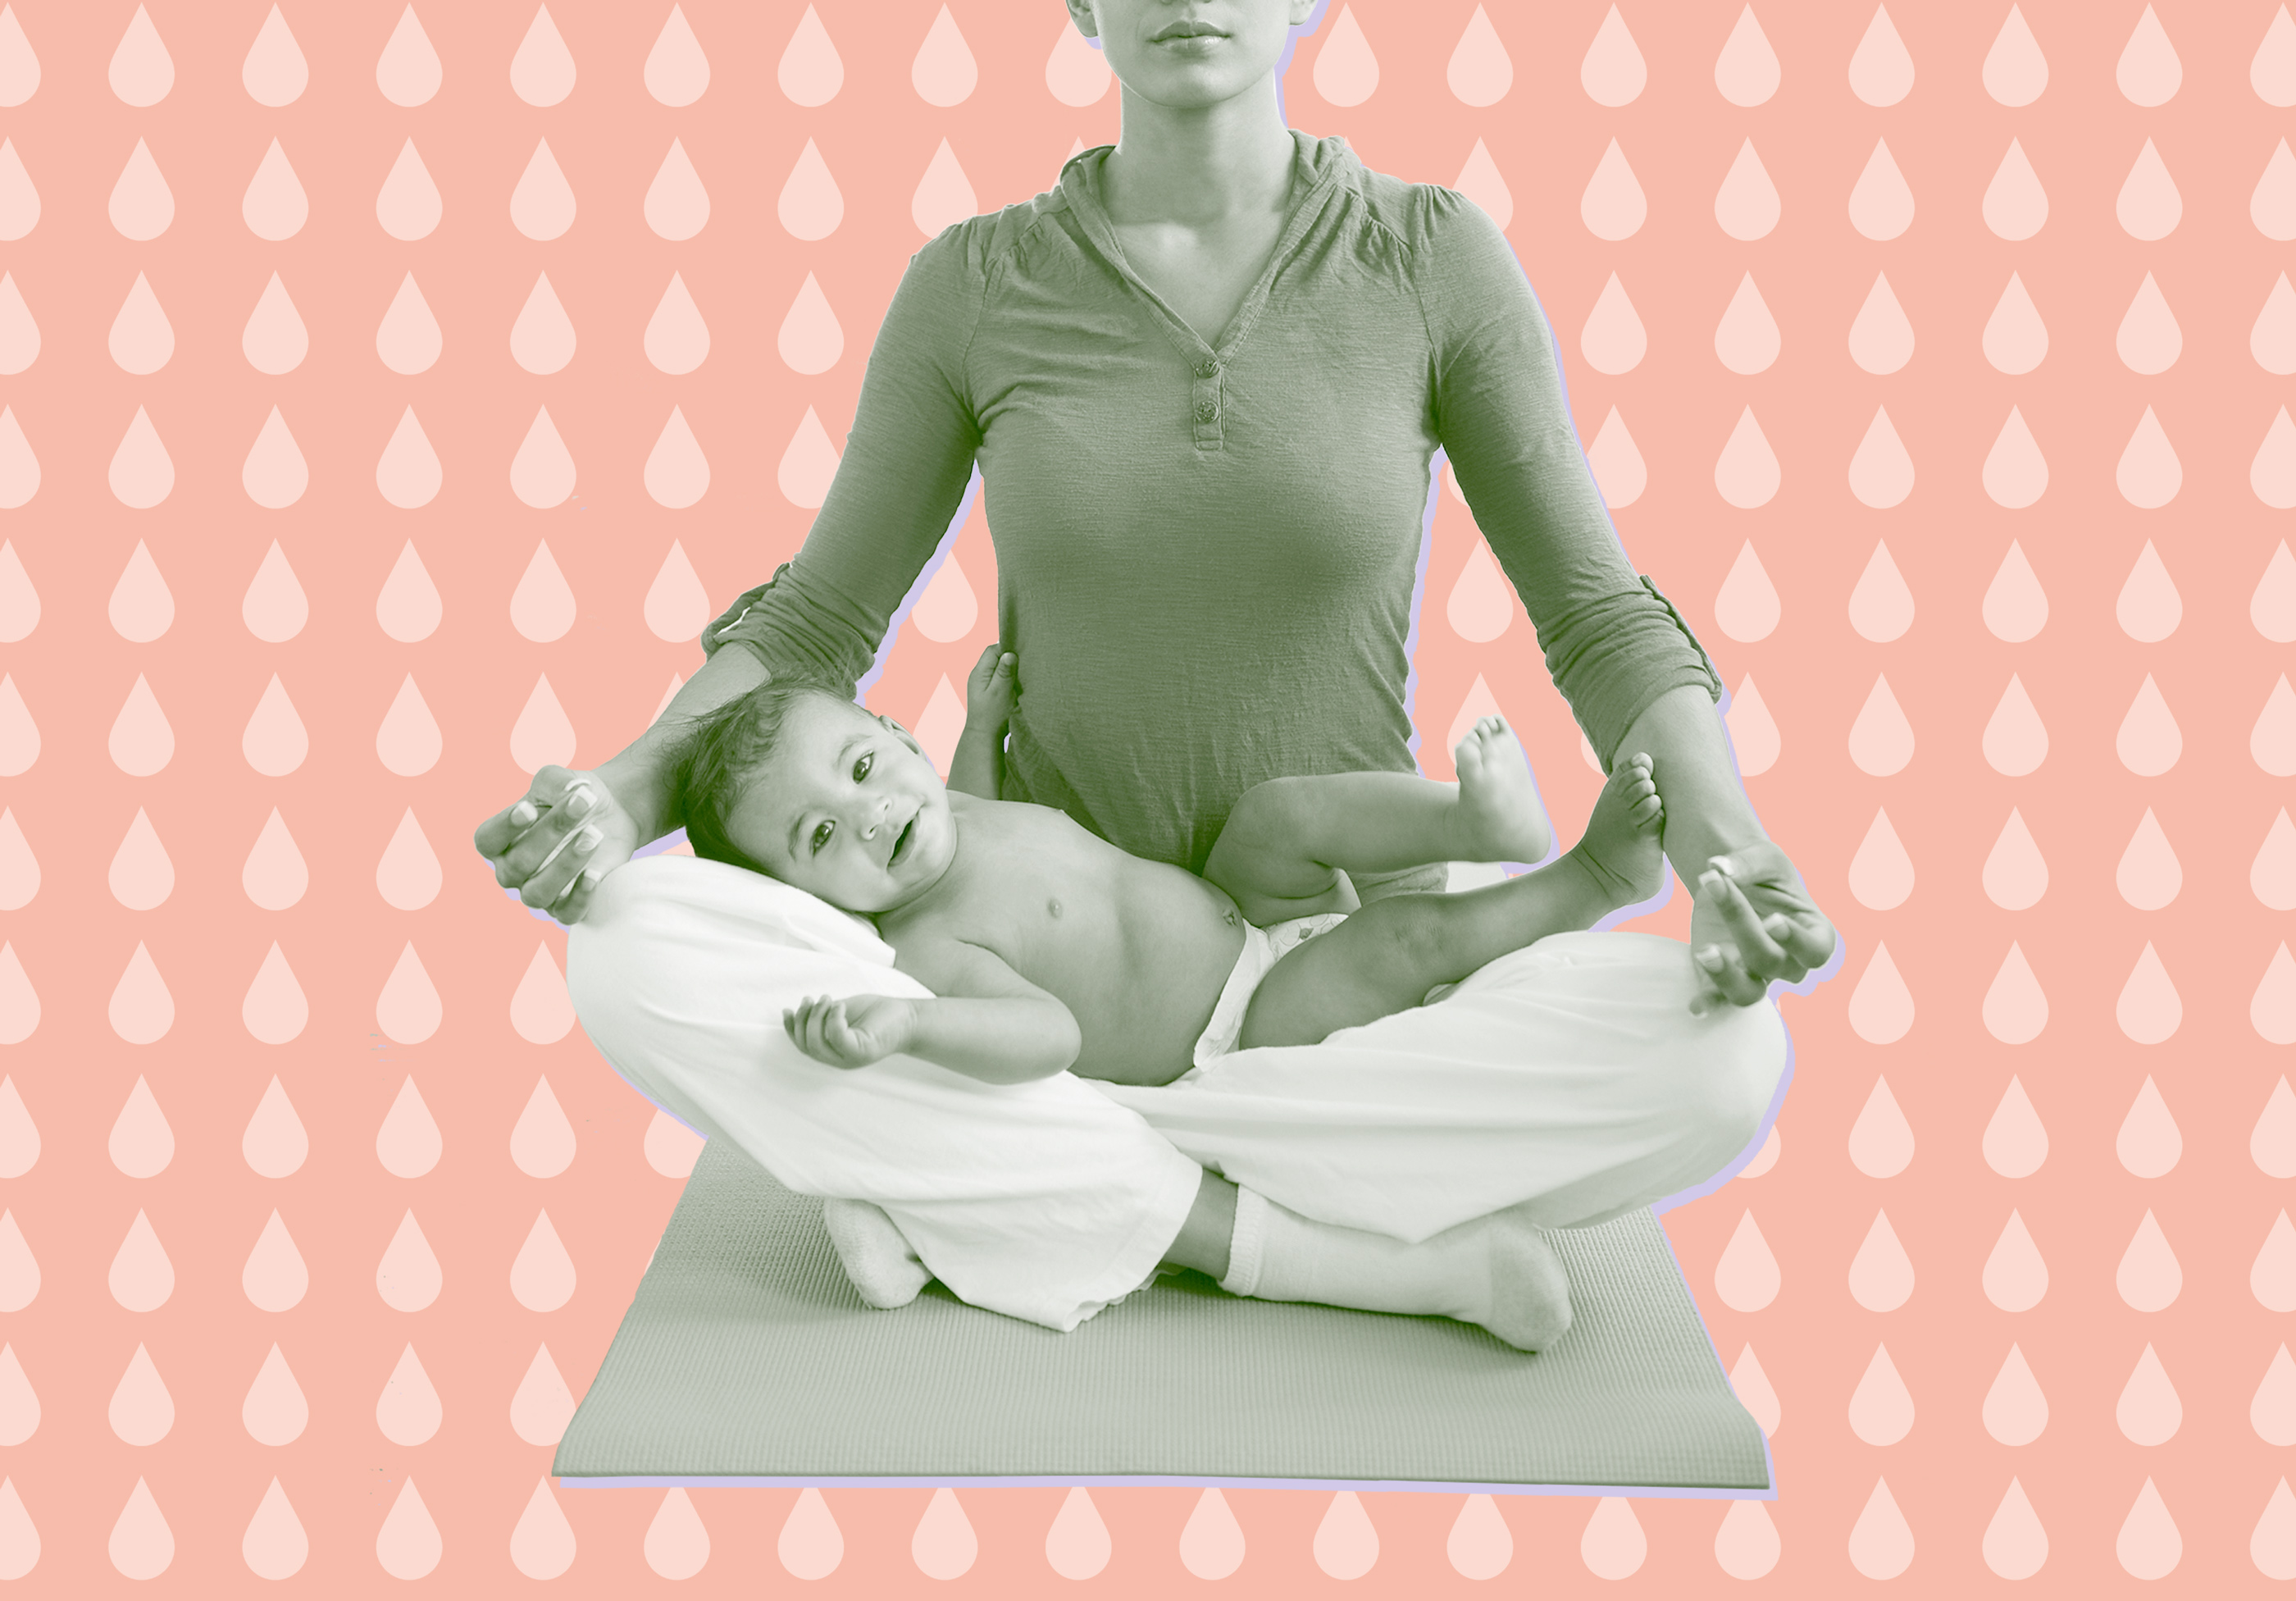 image of woman in yoga pose with baby in her lap